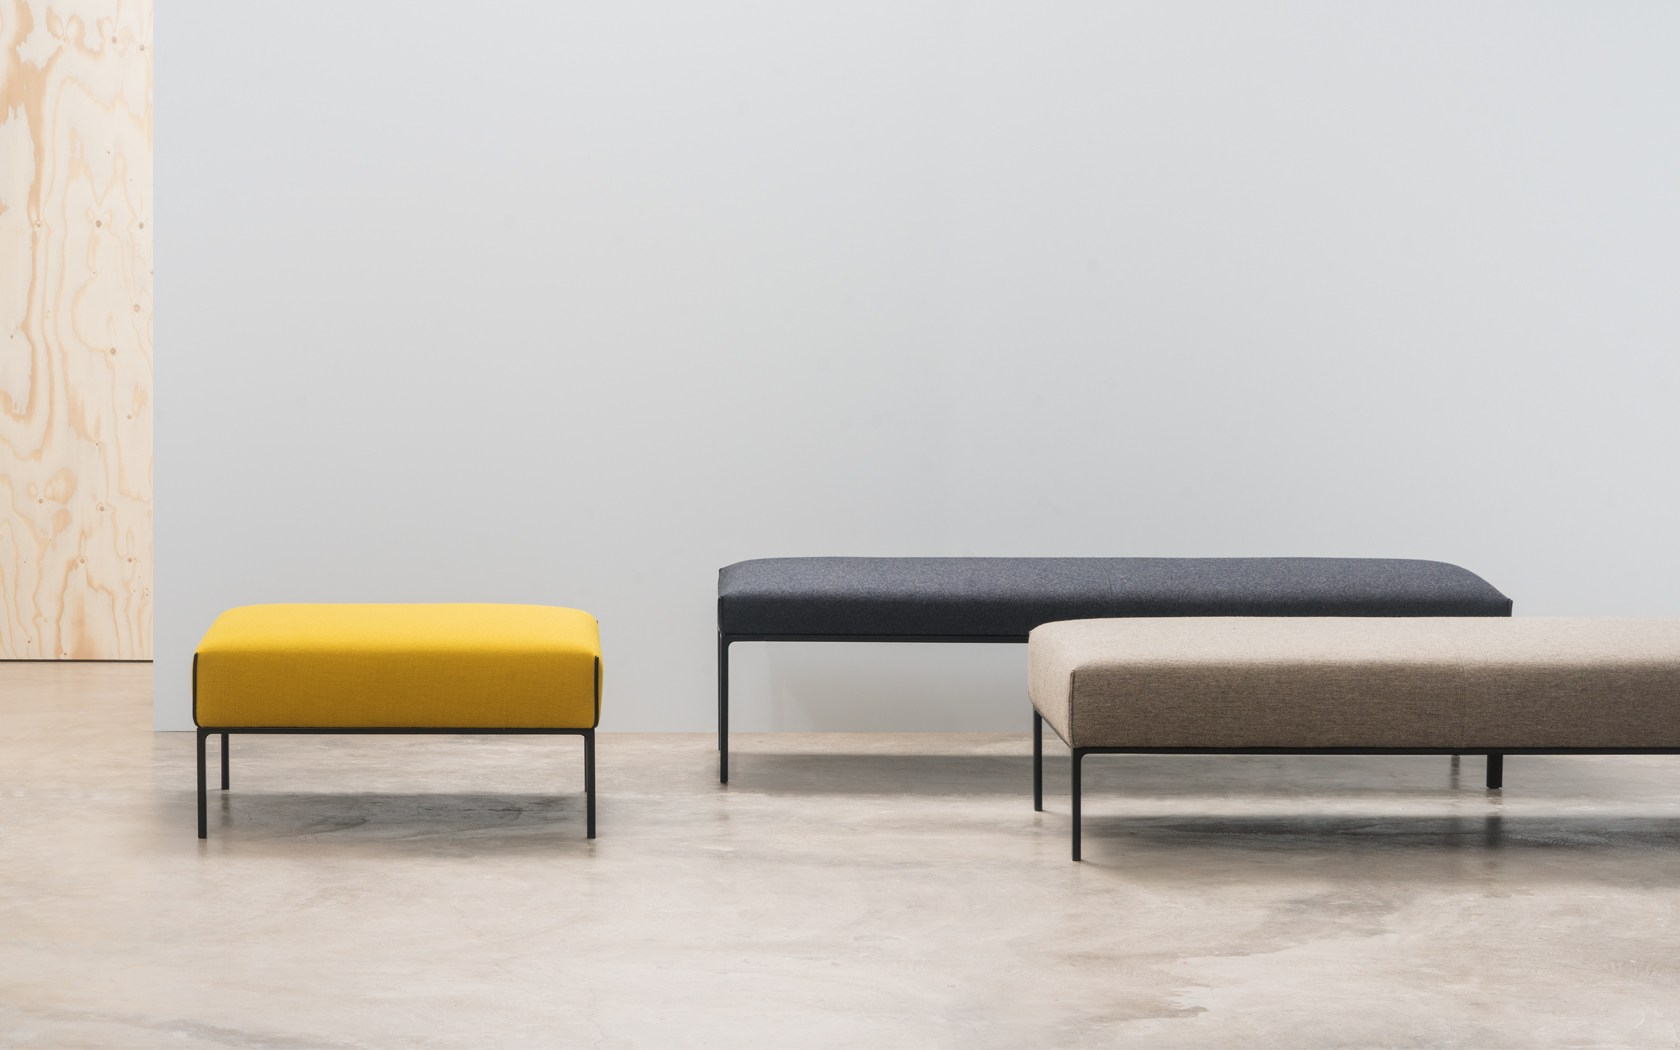 Andrew World Sit Best Of Neocon Extra Table By Andreu World  # Ragla Muebles Infantiles